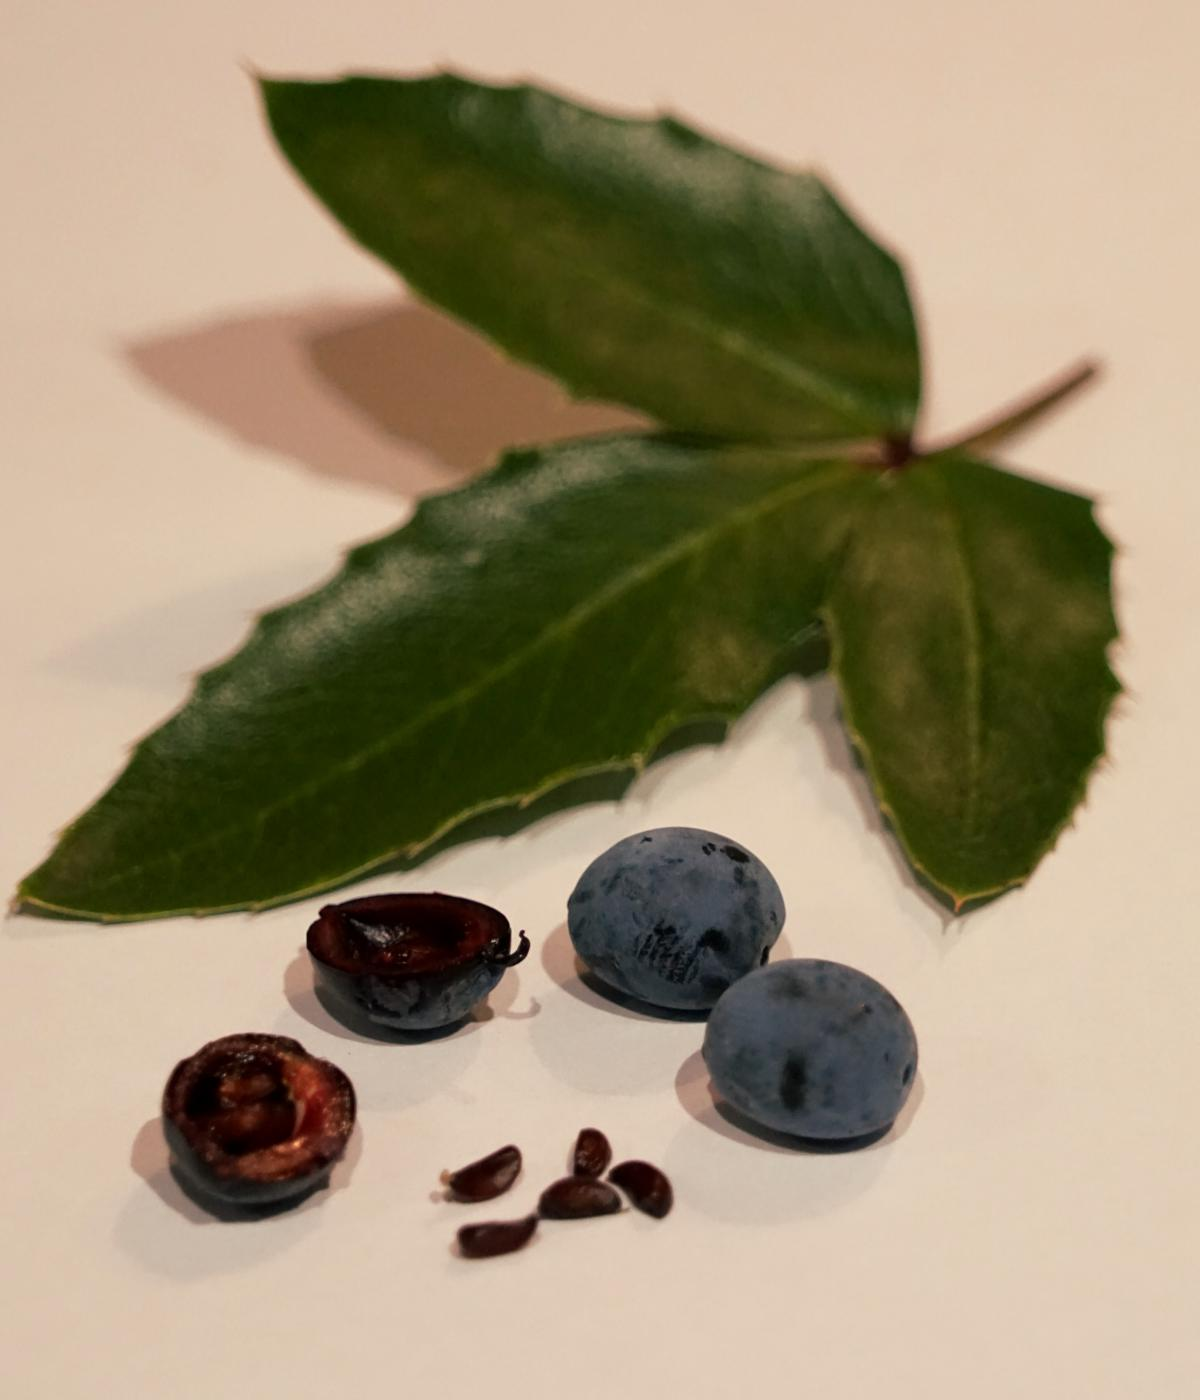 The mahonia berry, with seeds, fruit and leaves.